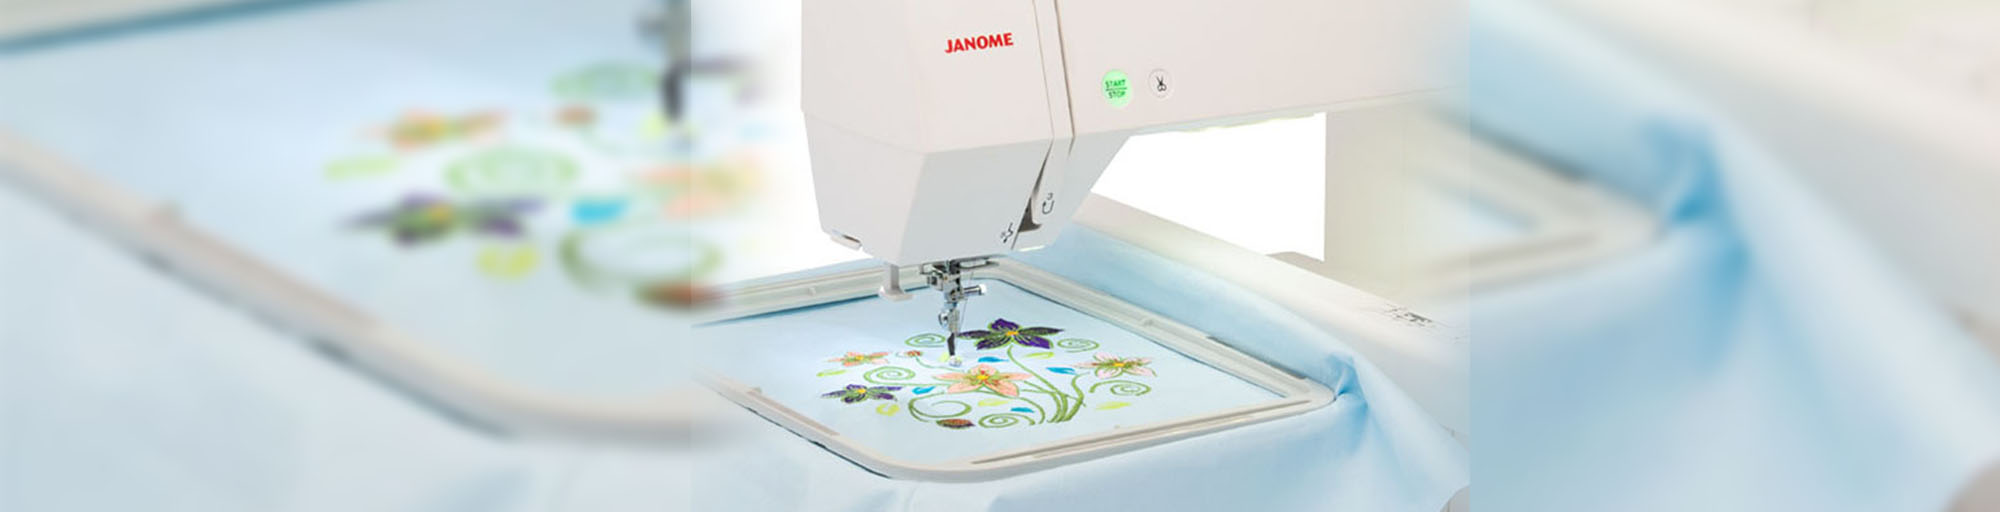 Janome embroidery formats banner